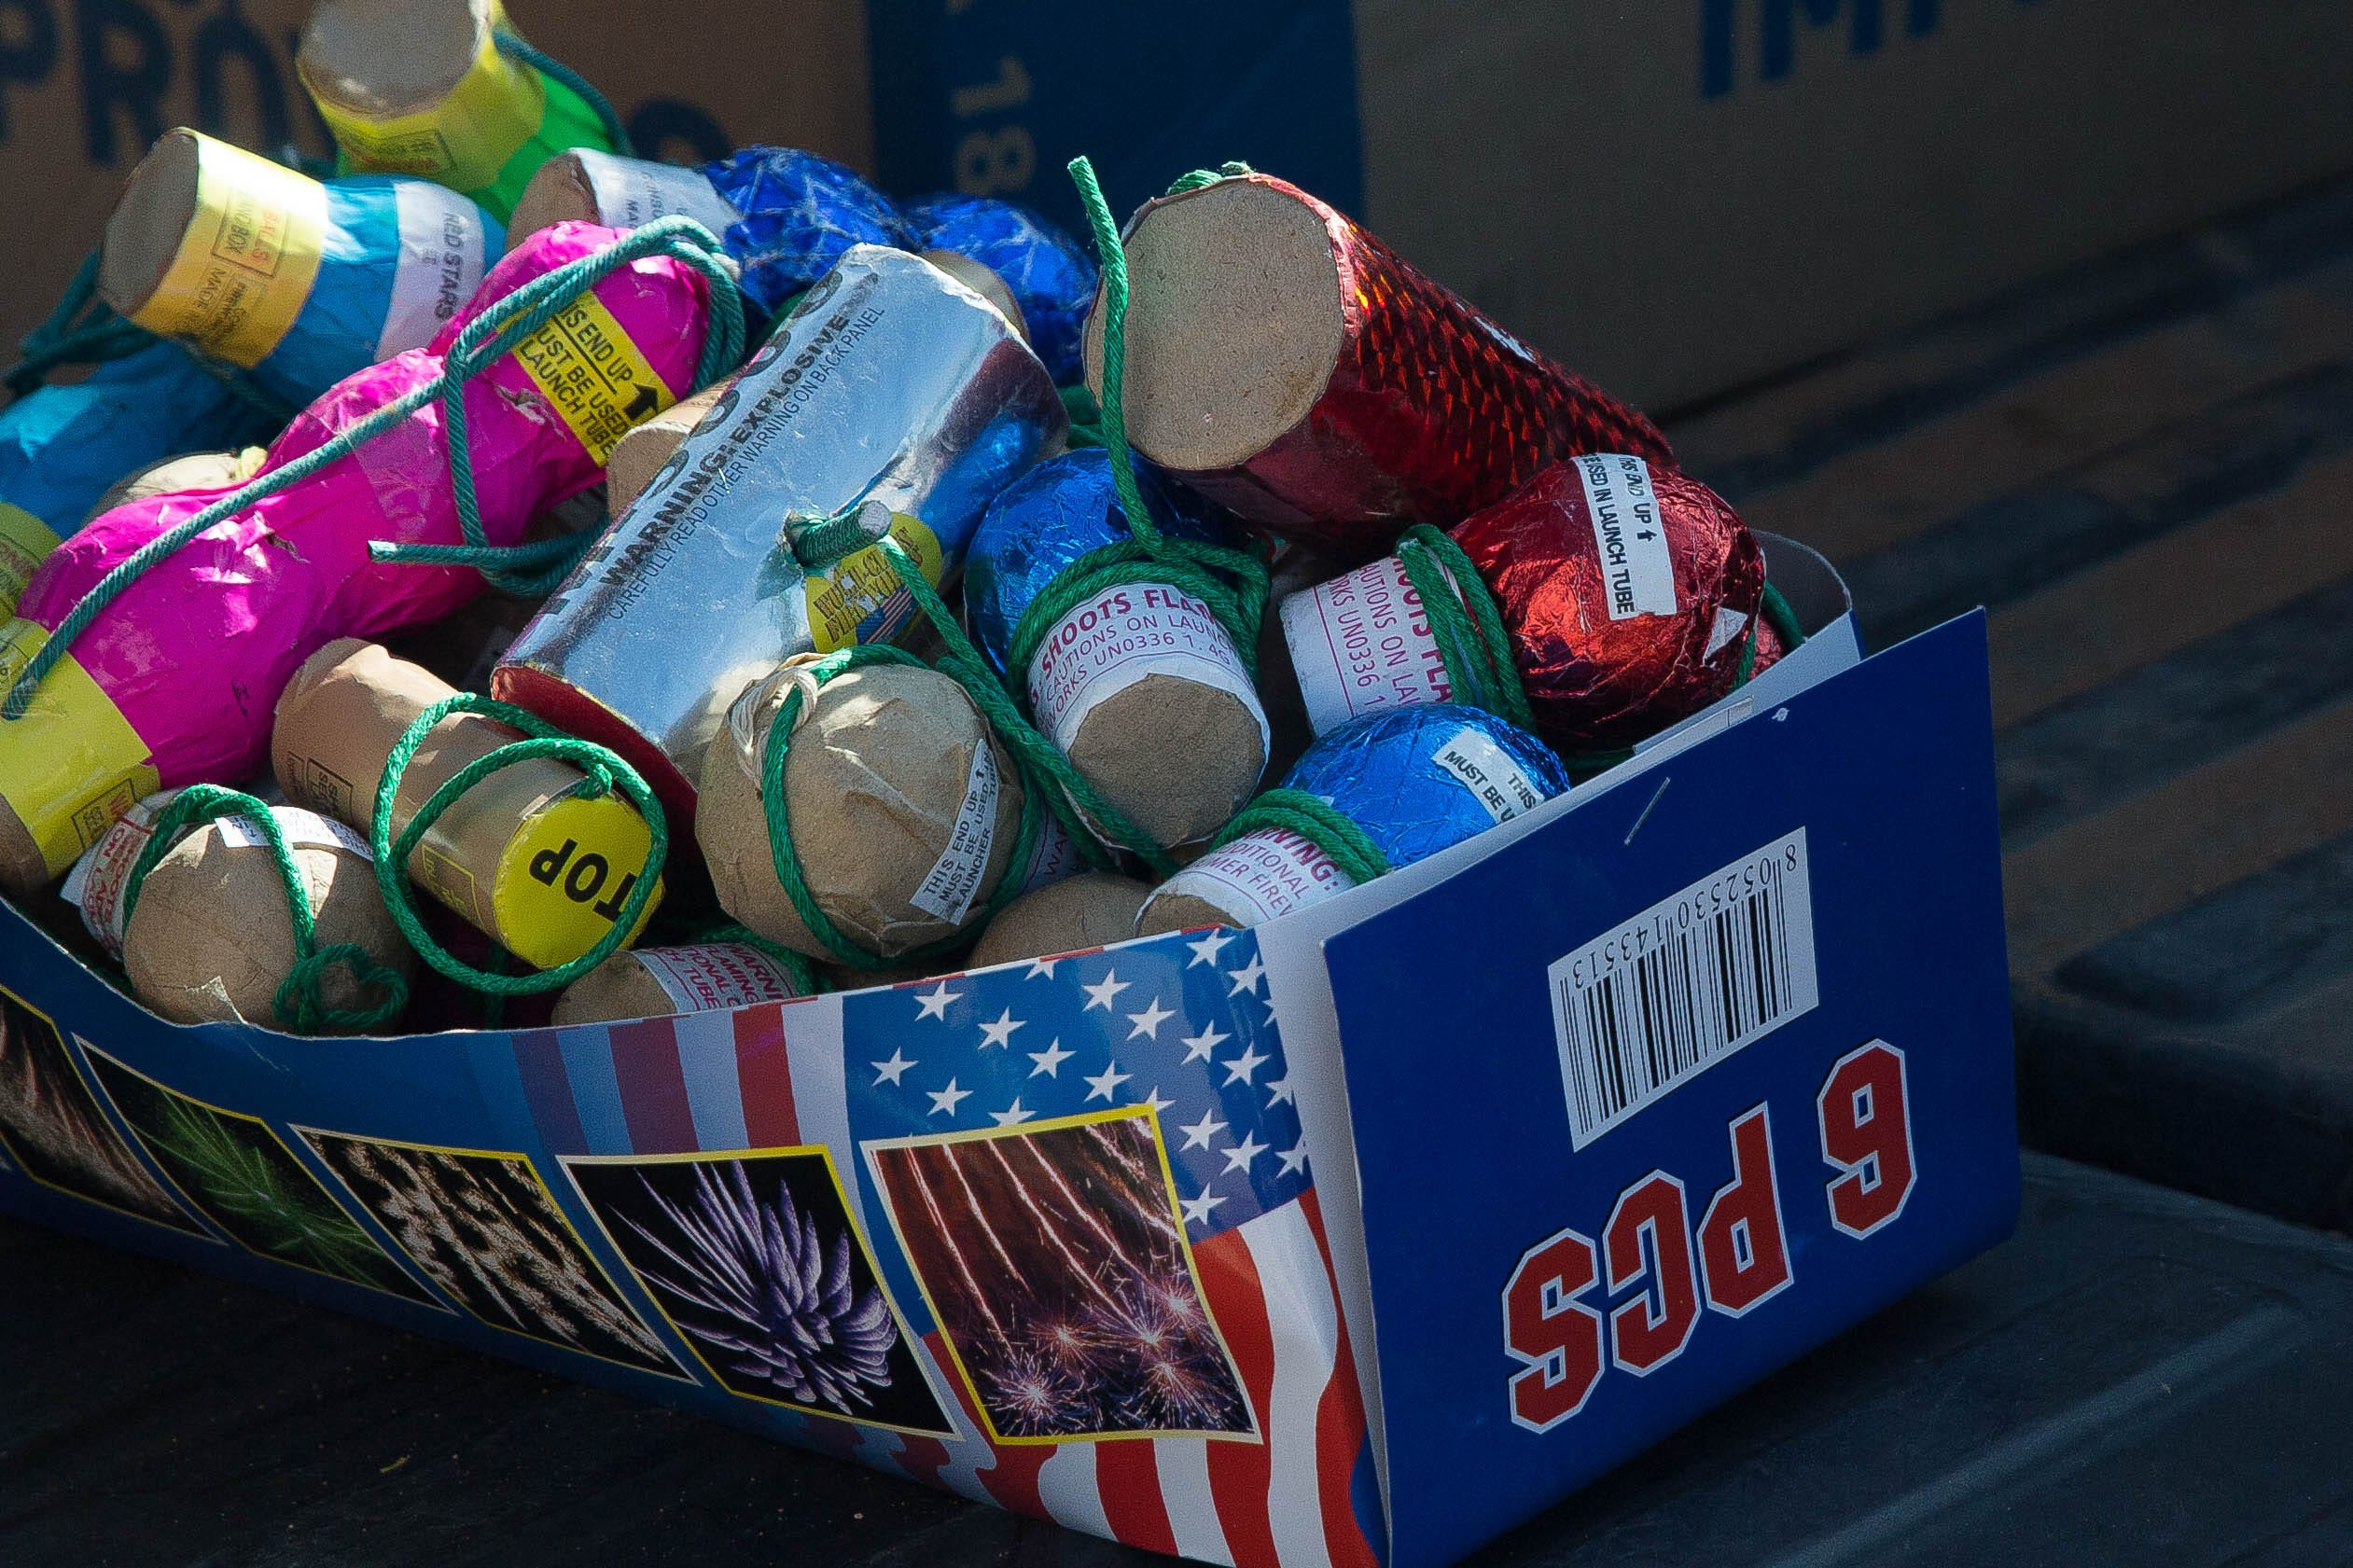 What to know about fireworks sales in Las Cruces | Las Cruces Sun